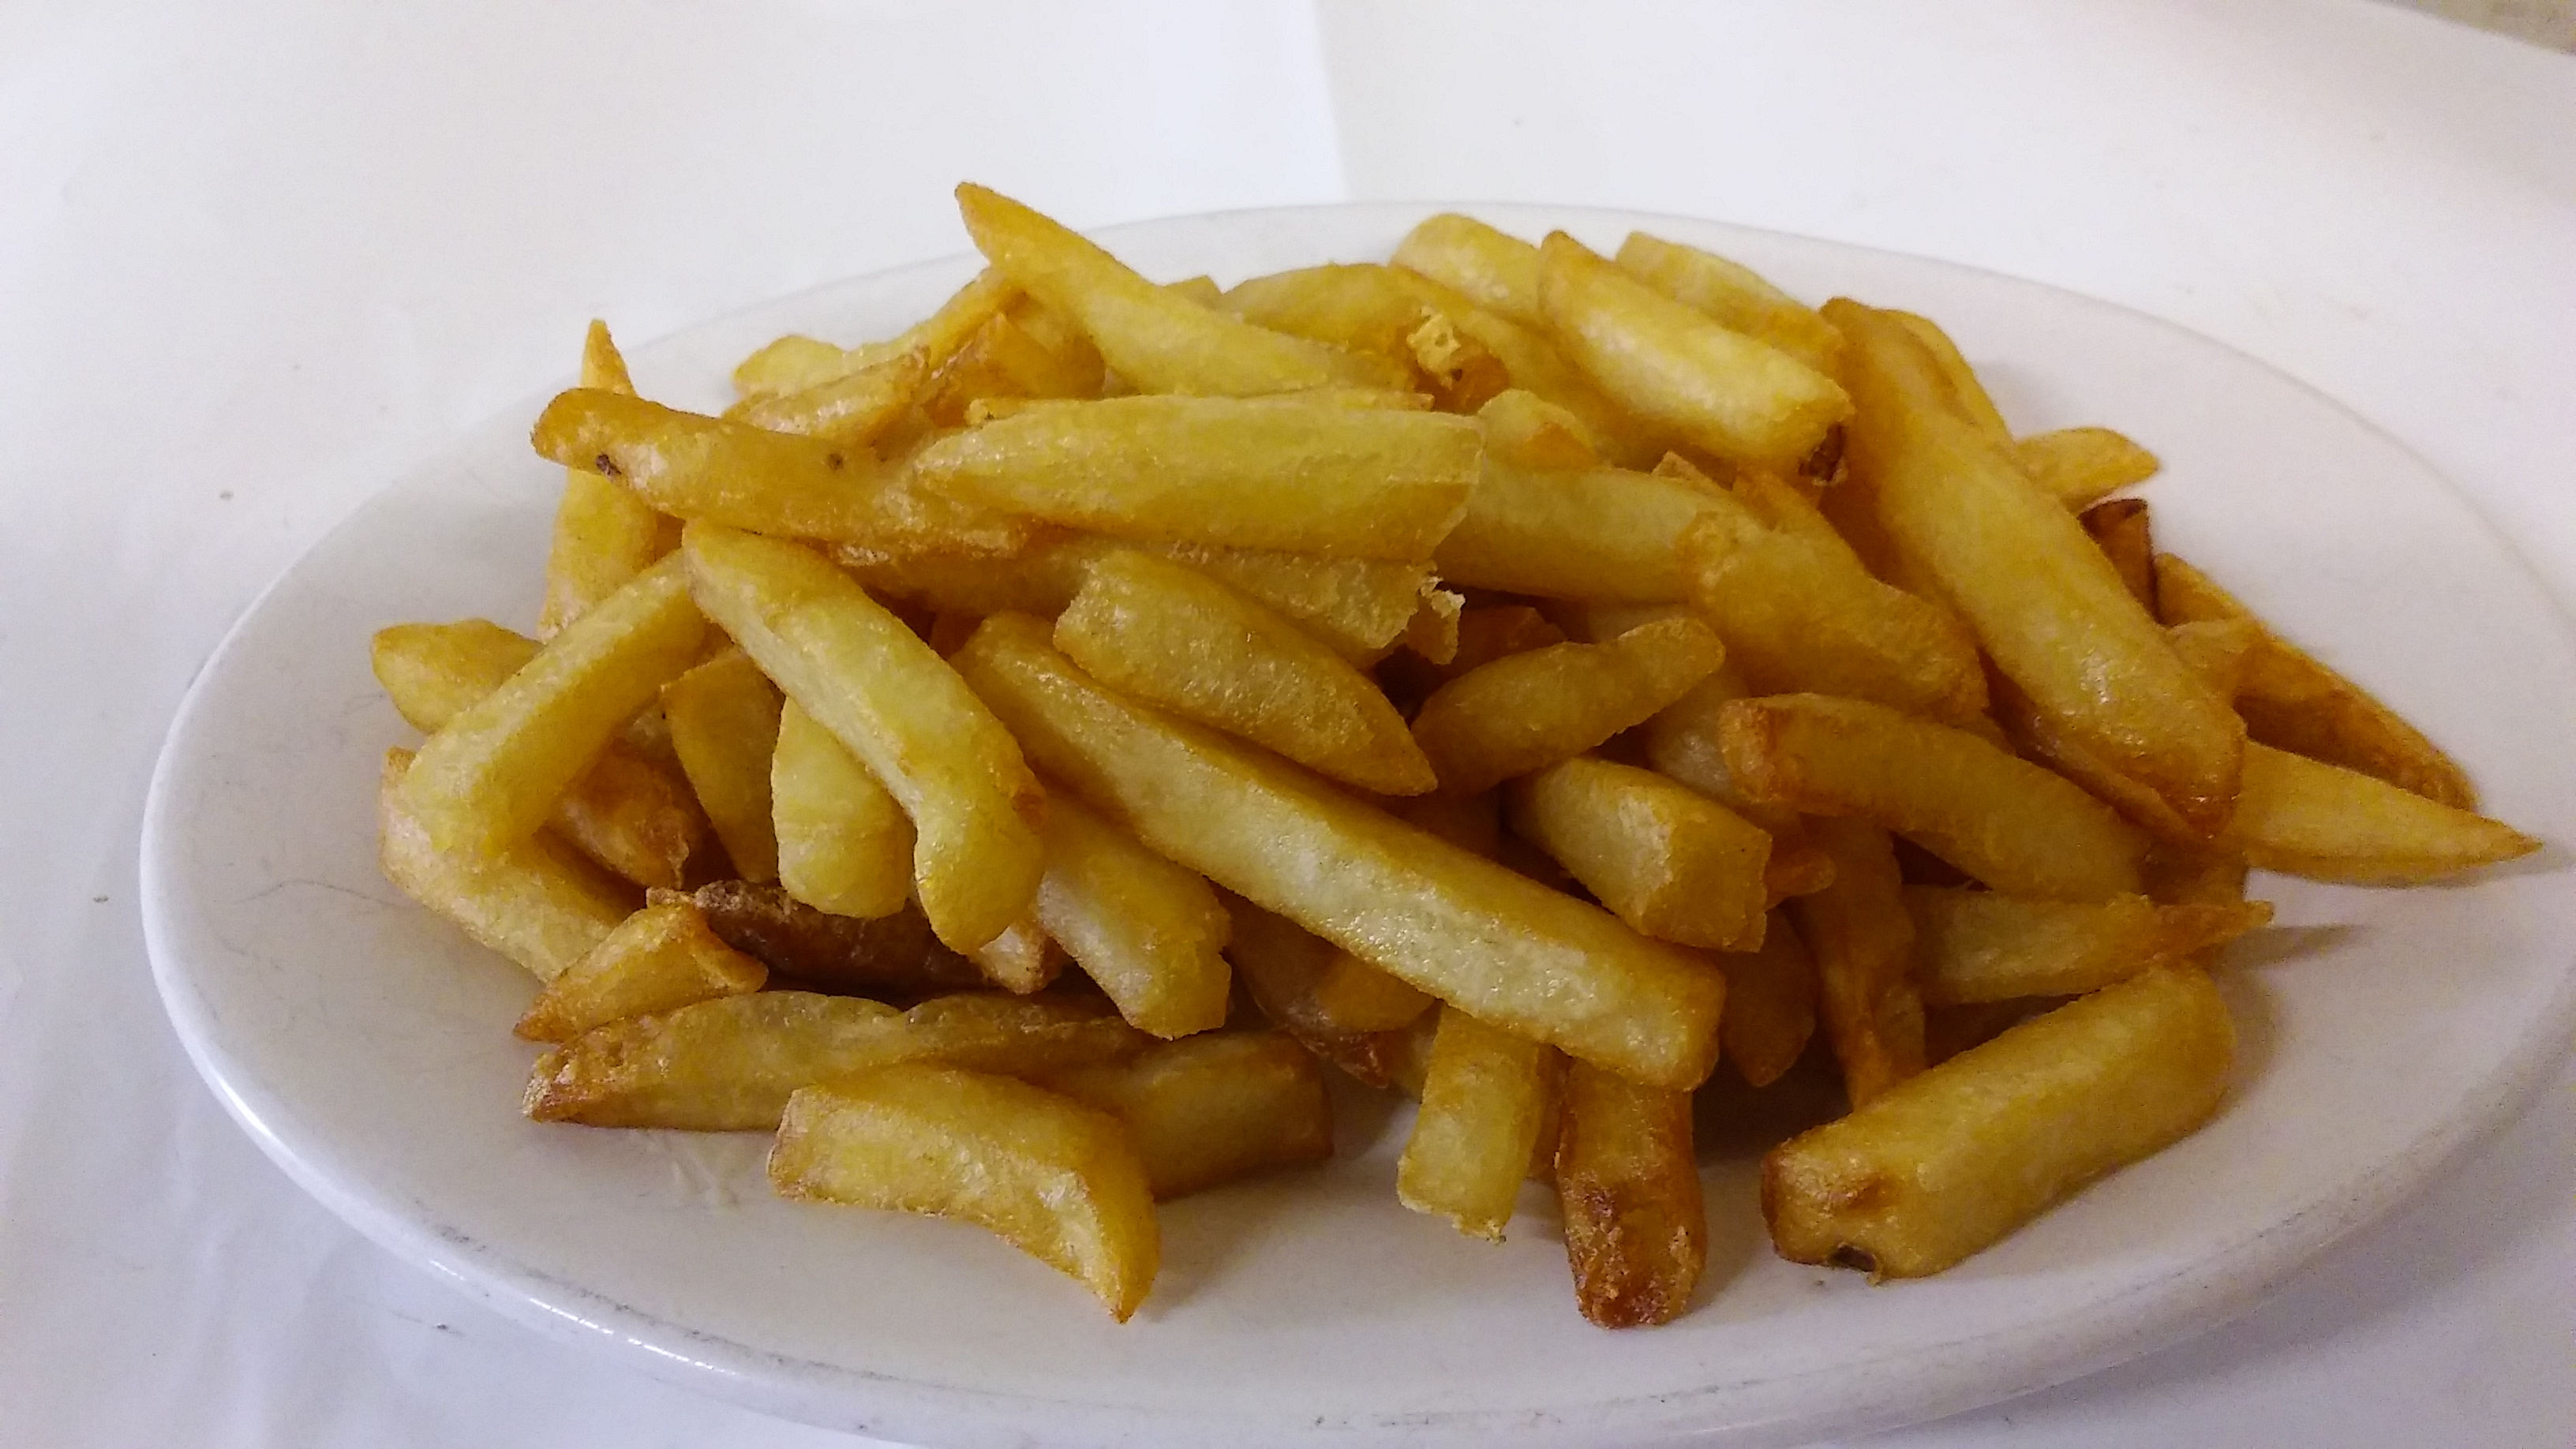 12. French Fries Image